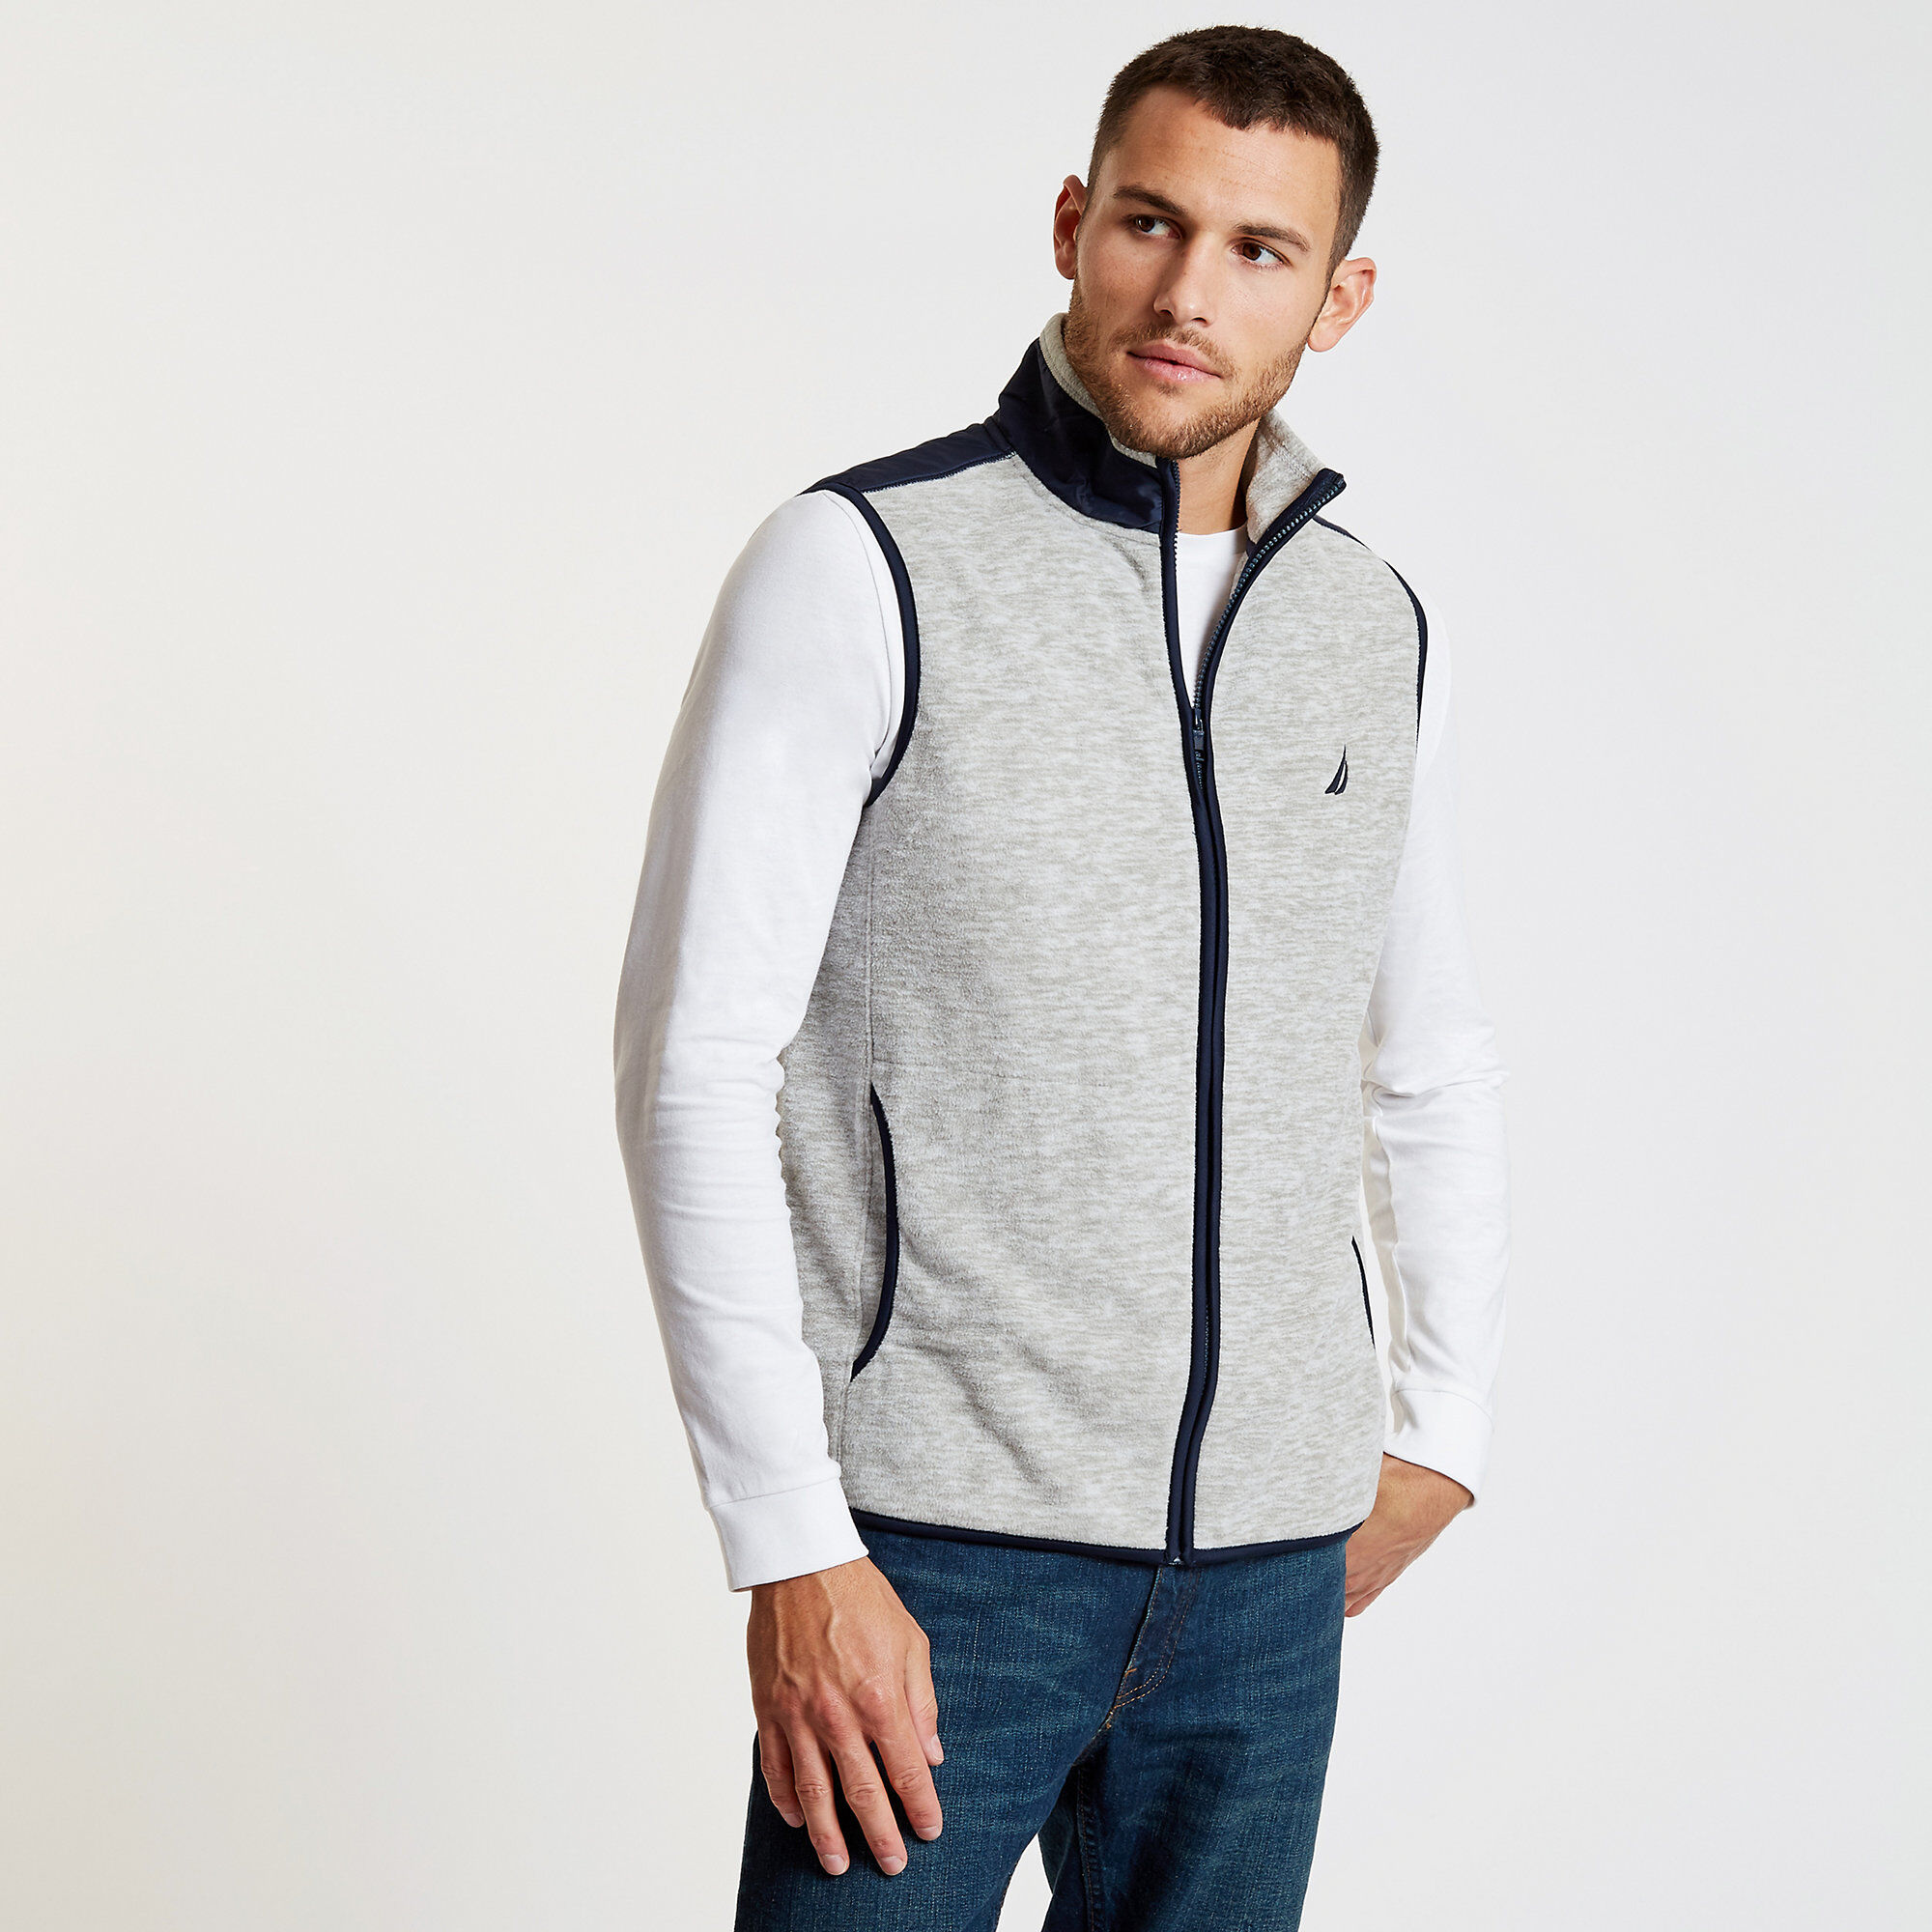 Nautica Men's Mock-Neck Colorblock Full-Zip Vest (Grey heather/